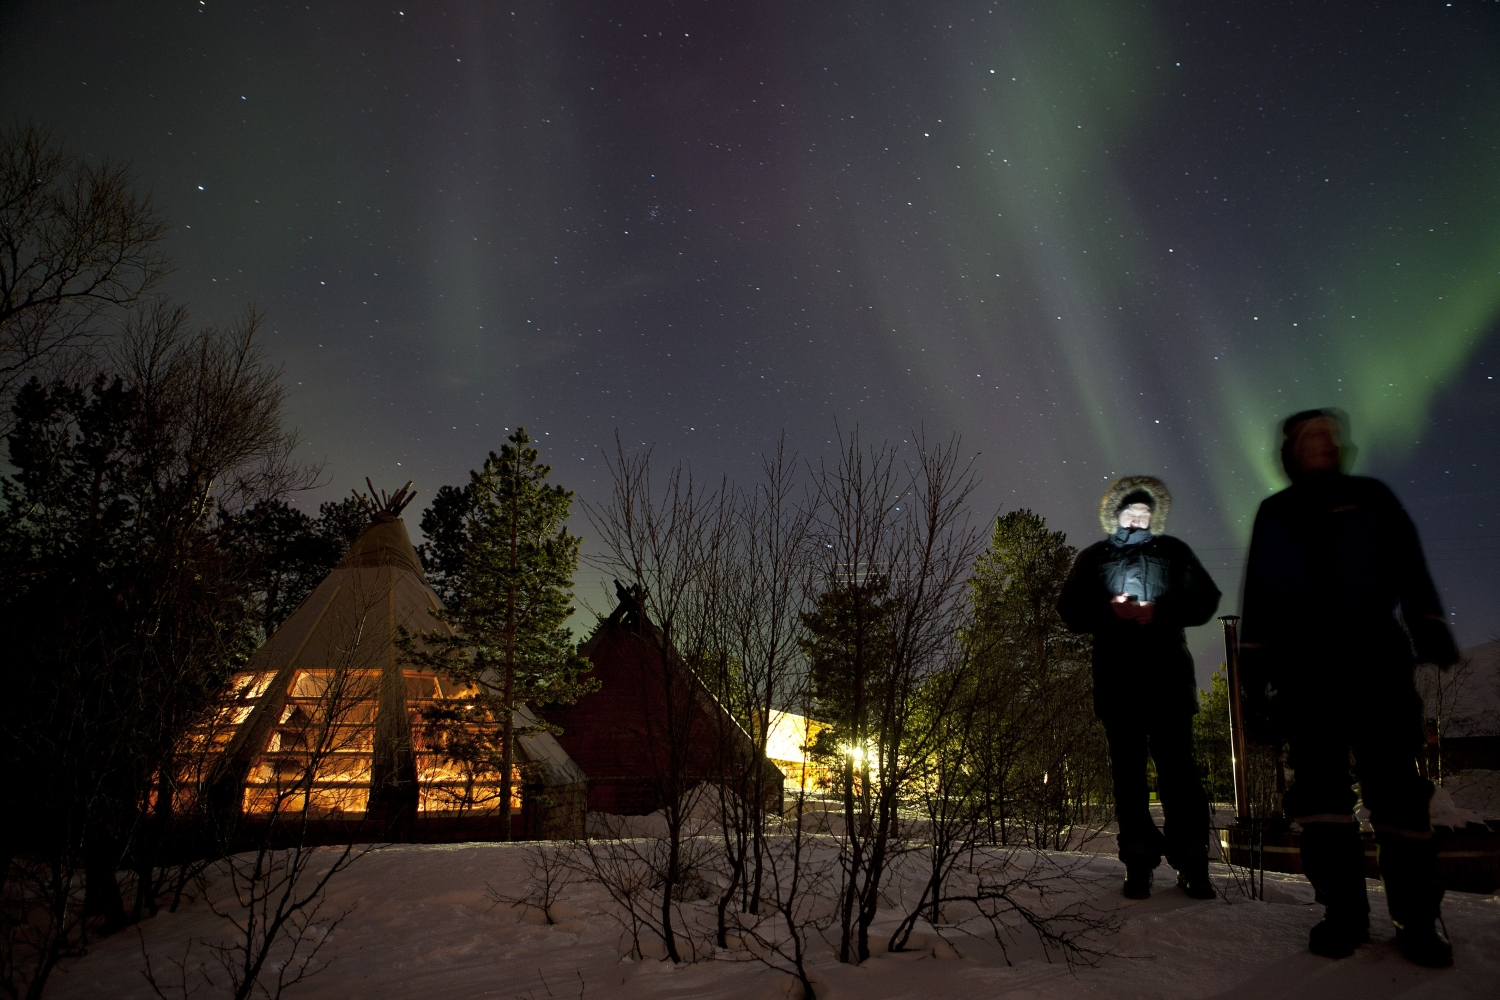 People standing outside of the gamme hut watching the Northern Lights